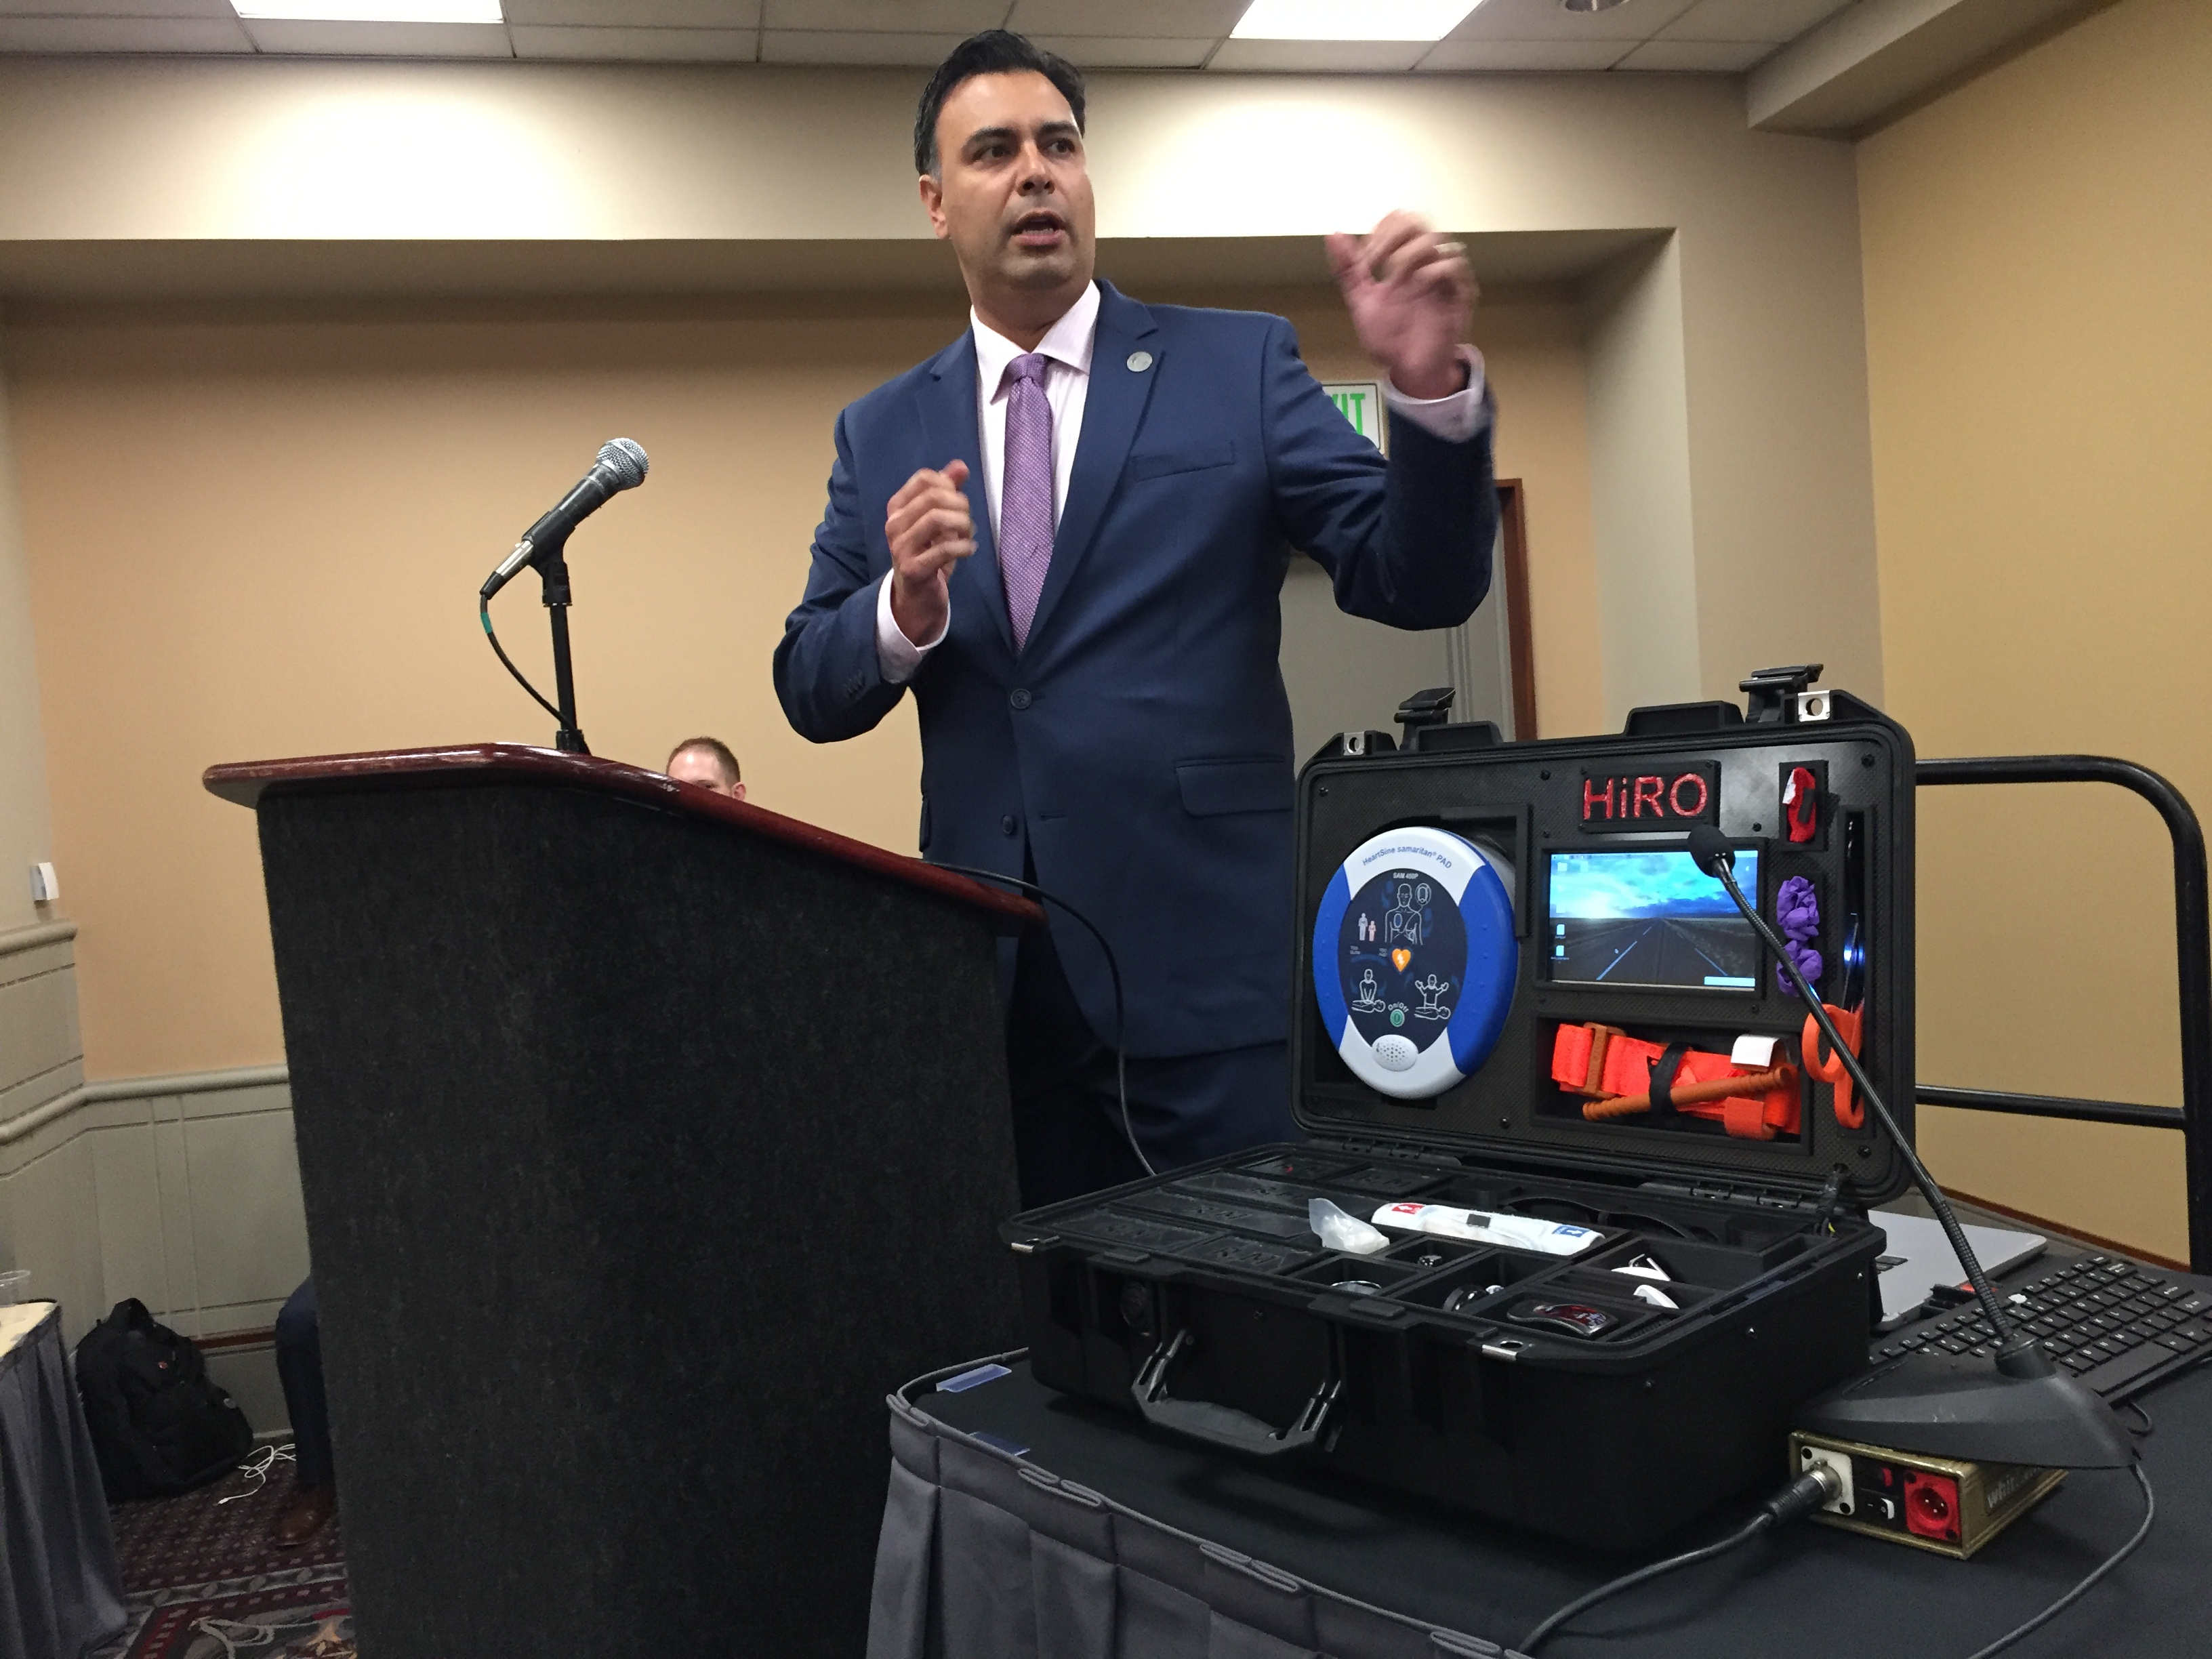 At an osteopathic conference in Philadelphia, Italo Subbarao described how this medical kit could be delivered by drone to a disaster scene, along with a wireless headset so physicians could tell civilians how to use it.